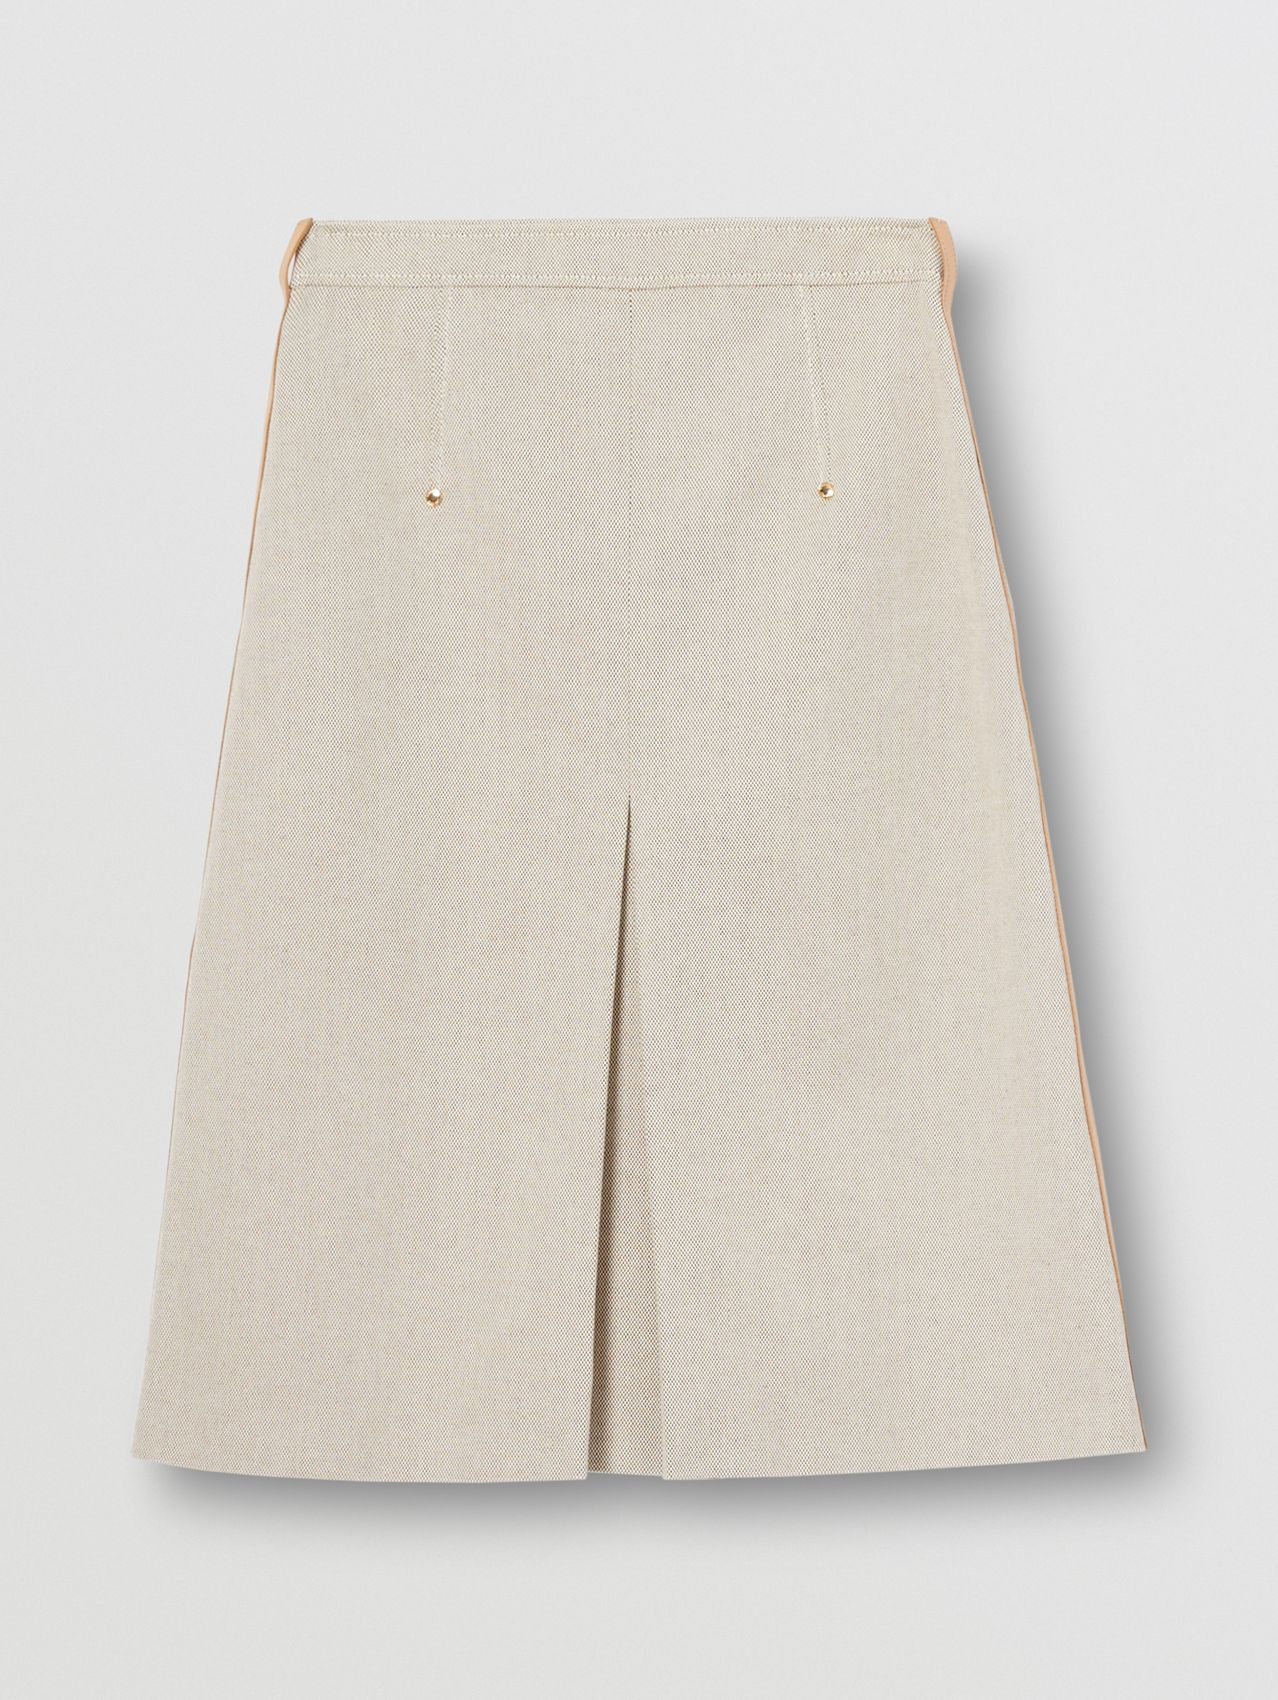 Box-pleat Detail Cotton Canvas A-line Skirt in Soft Fawn Melange